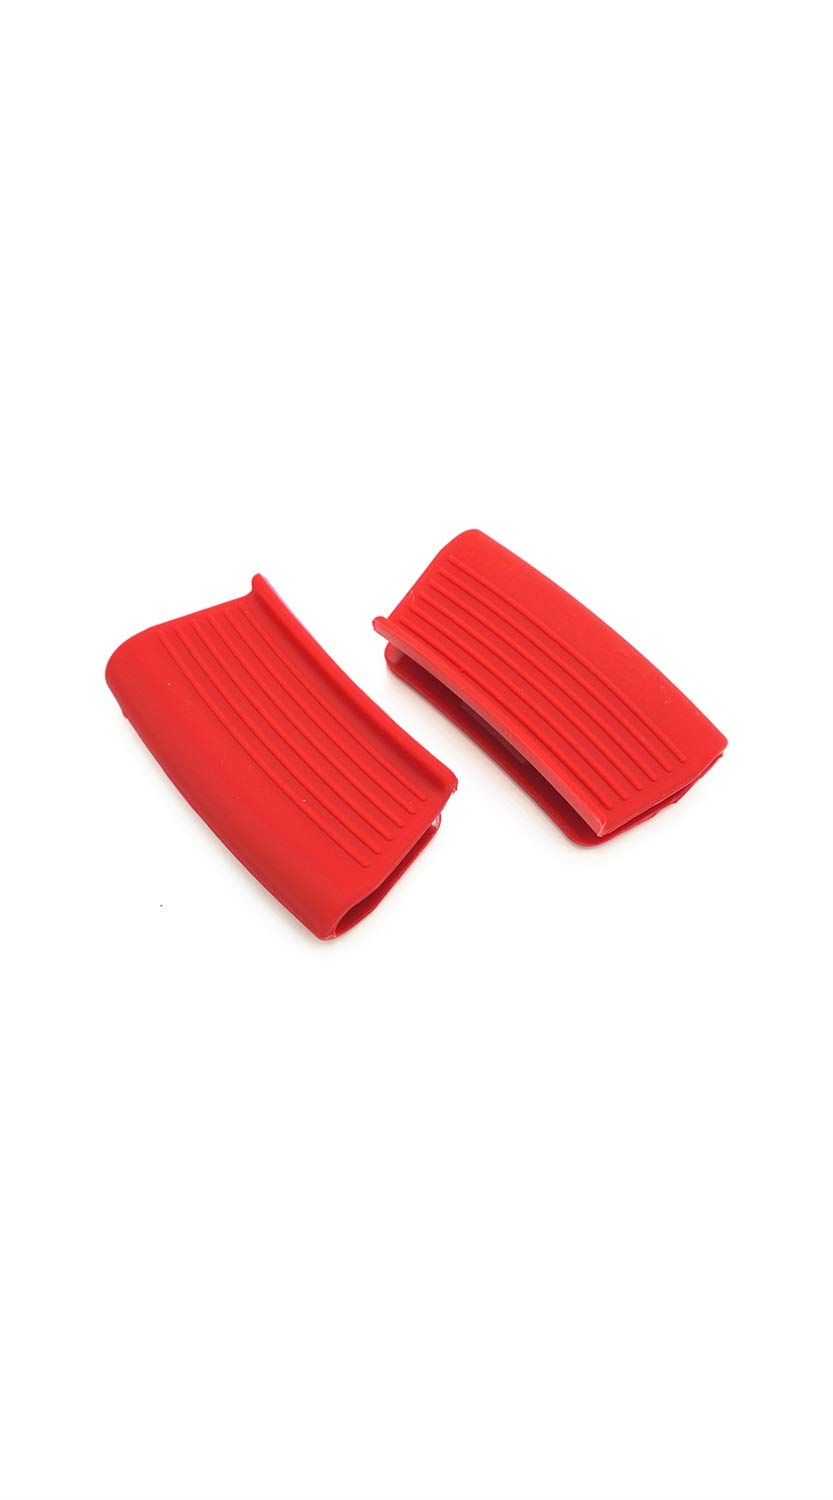 TYZP Mini Silicone Pot Holder Grip Clip Type Heat-Resistant Hot Pot Handle Cover for Kitchen (Color : Red) by TYZP